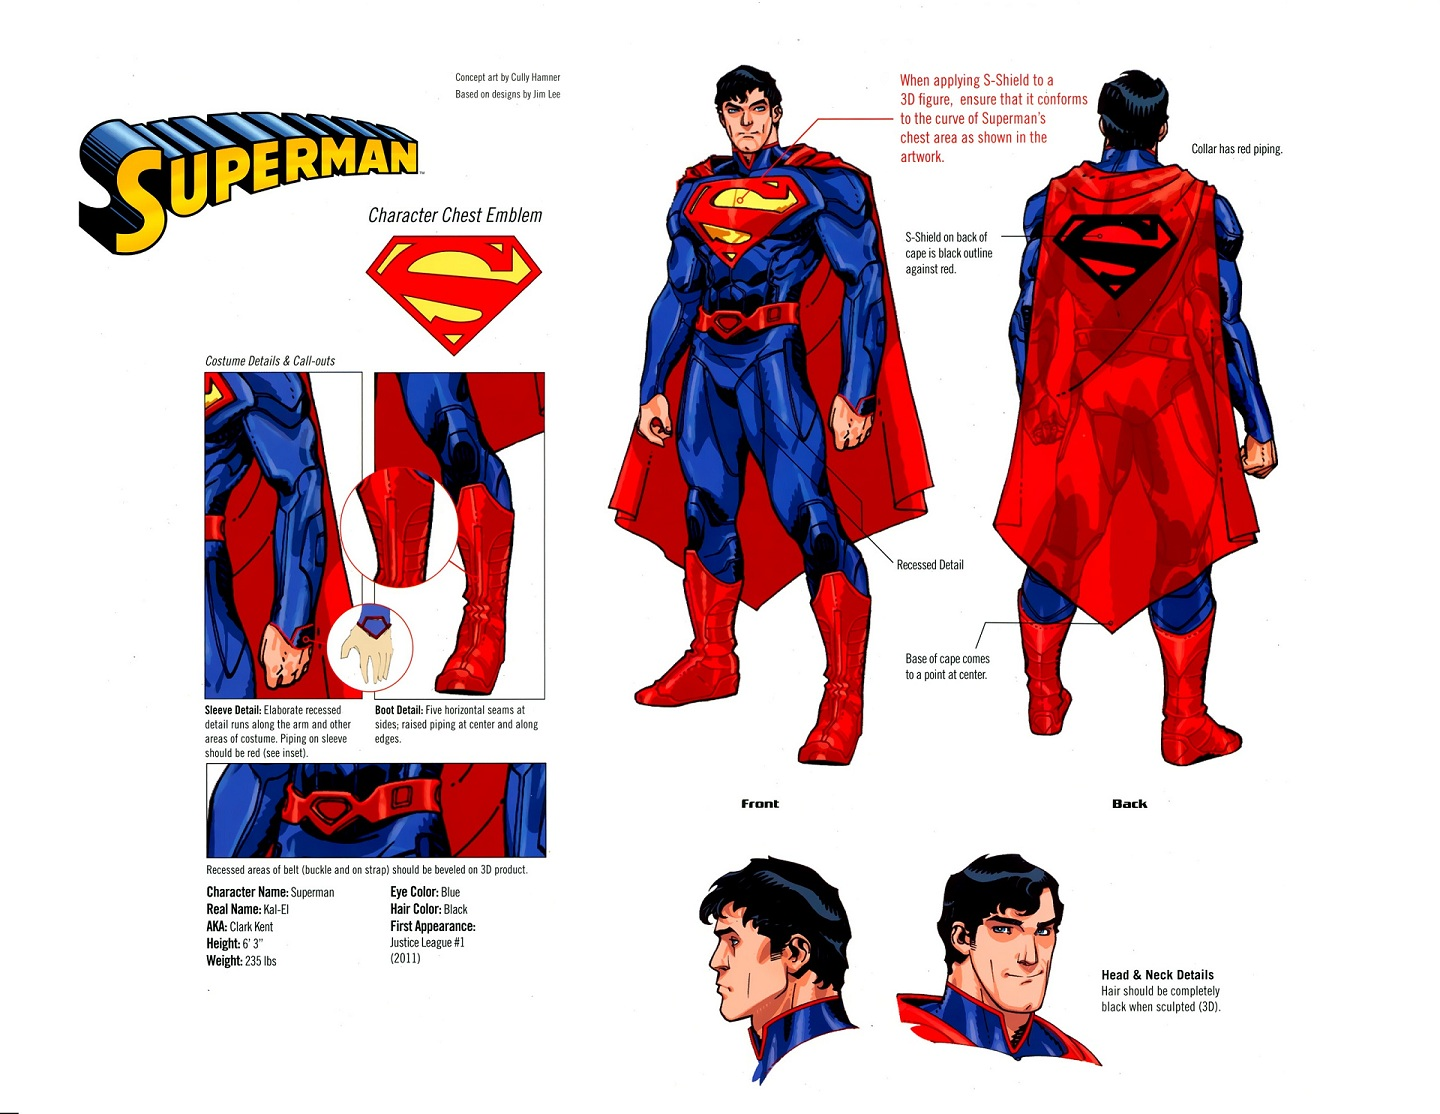 [Sideshow] Superman - Premium Format Figure - LANÇADO!!!! - Página 3 Superman-Style-Sheet-New-52-Cully-Hamner